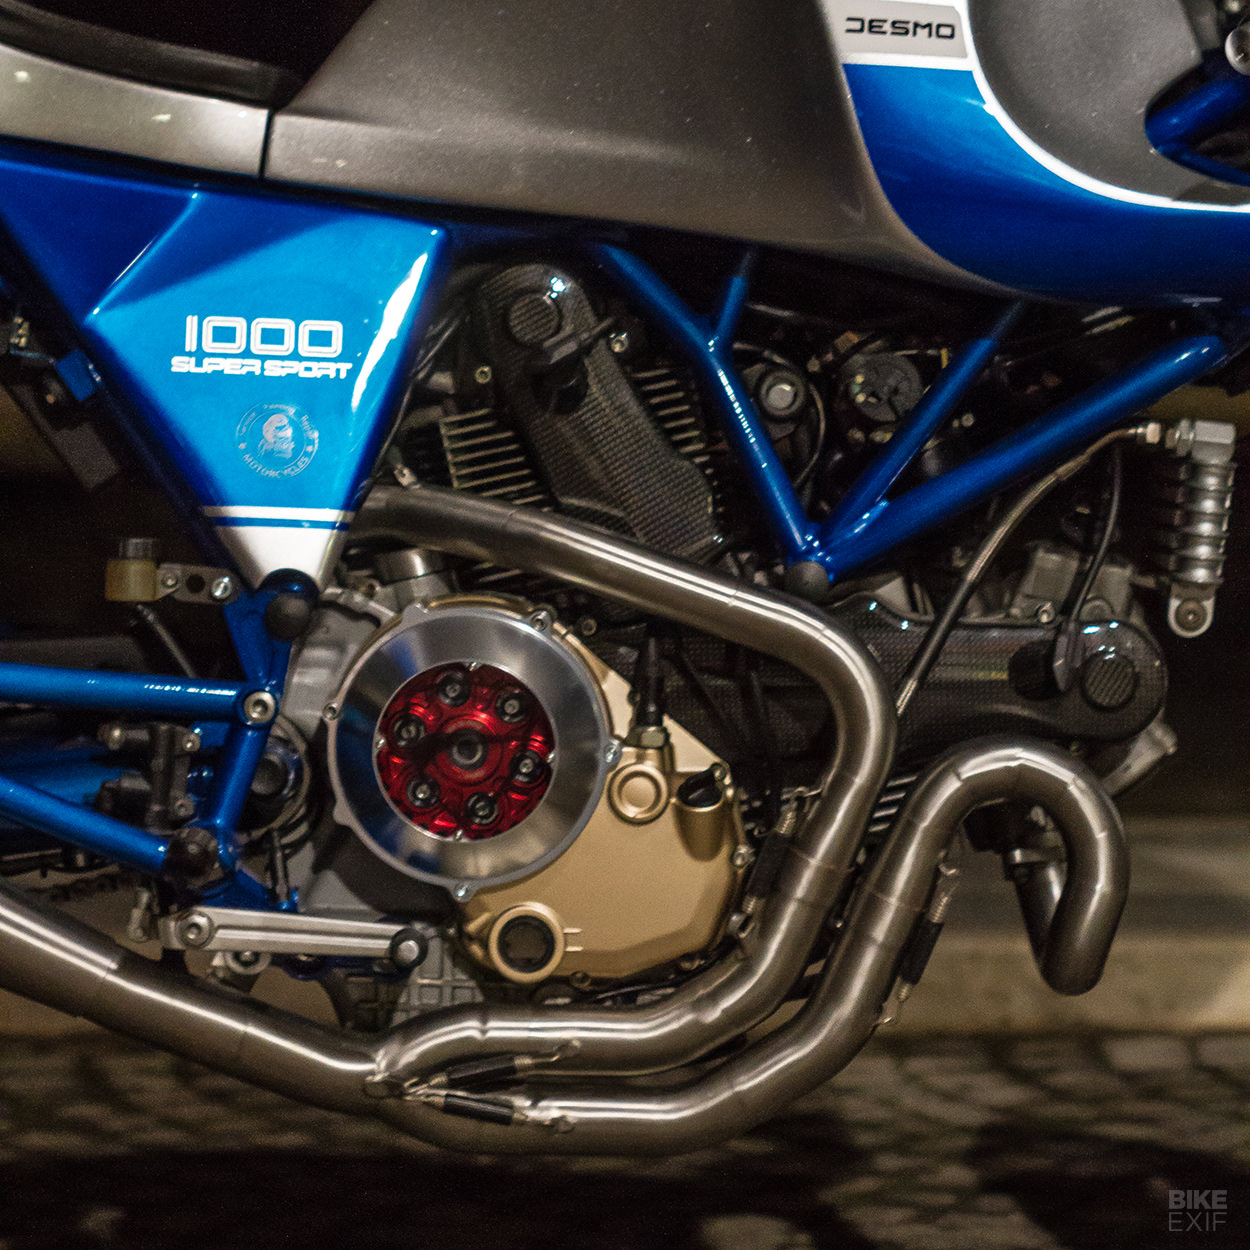 Ducati SS1000 do theo phong cach GT1000 Sportclassic - 9